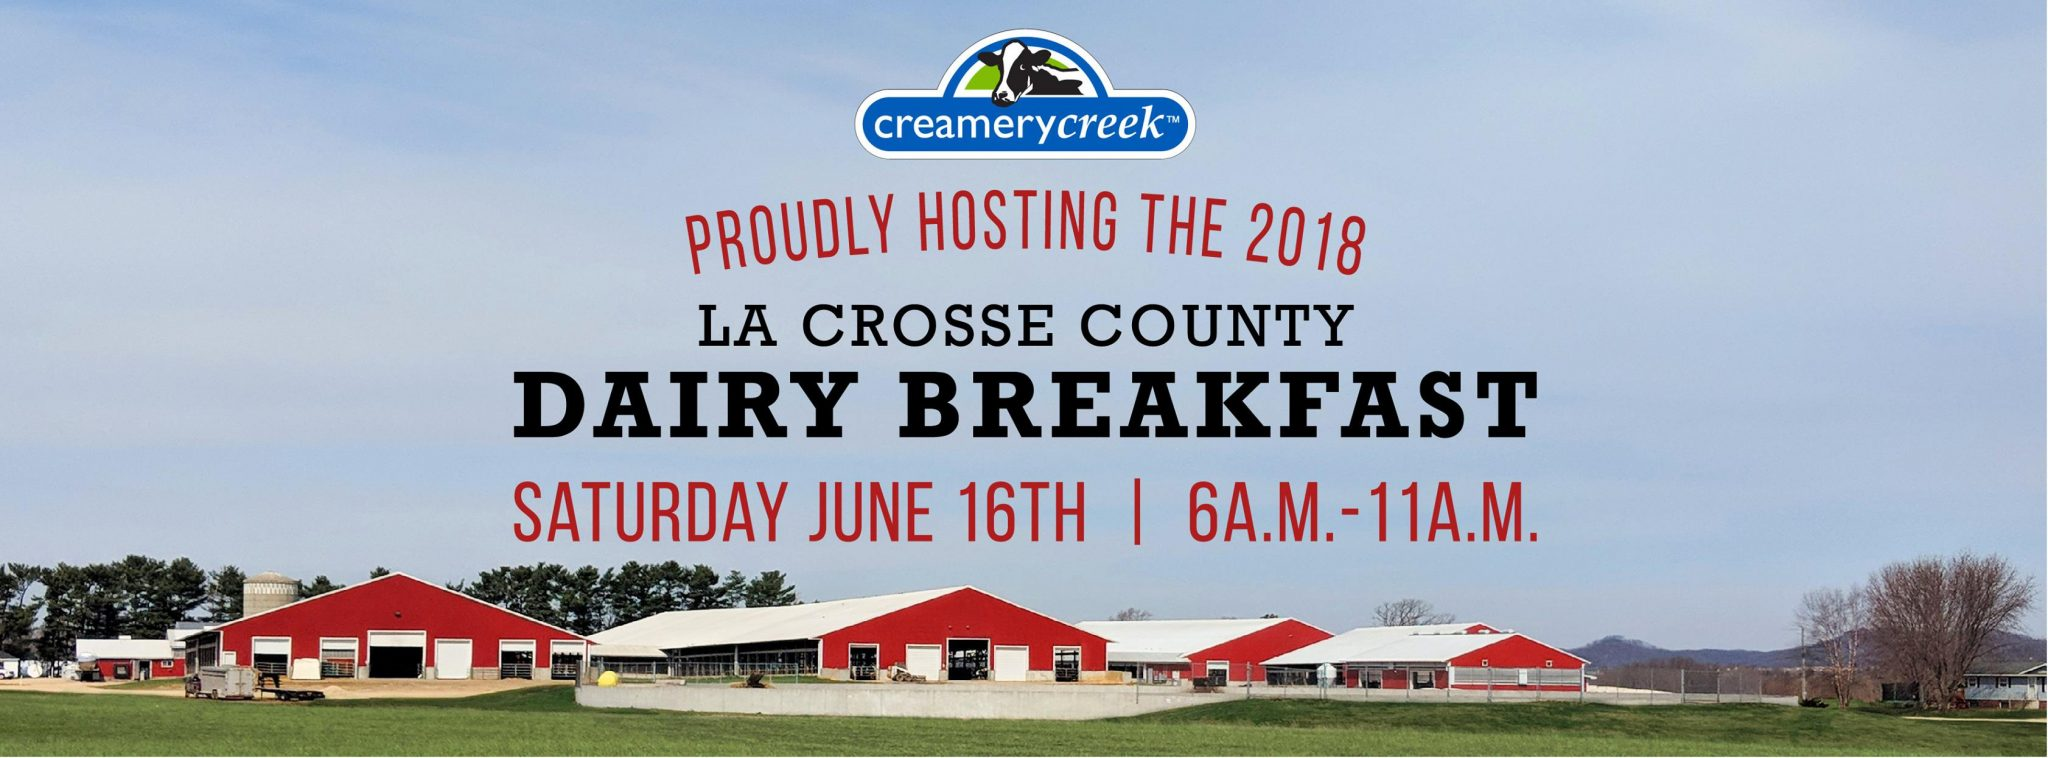 2018 La Crosse County Dairy Breakfast